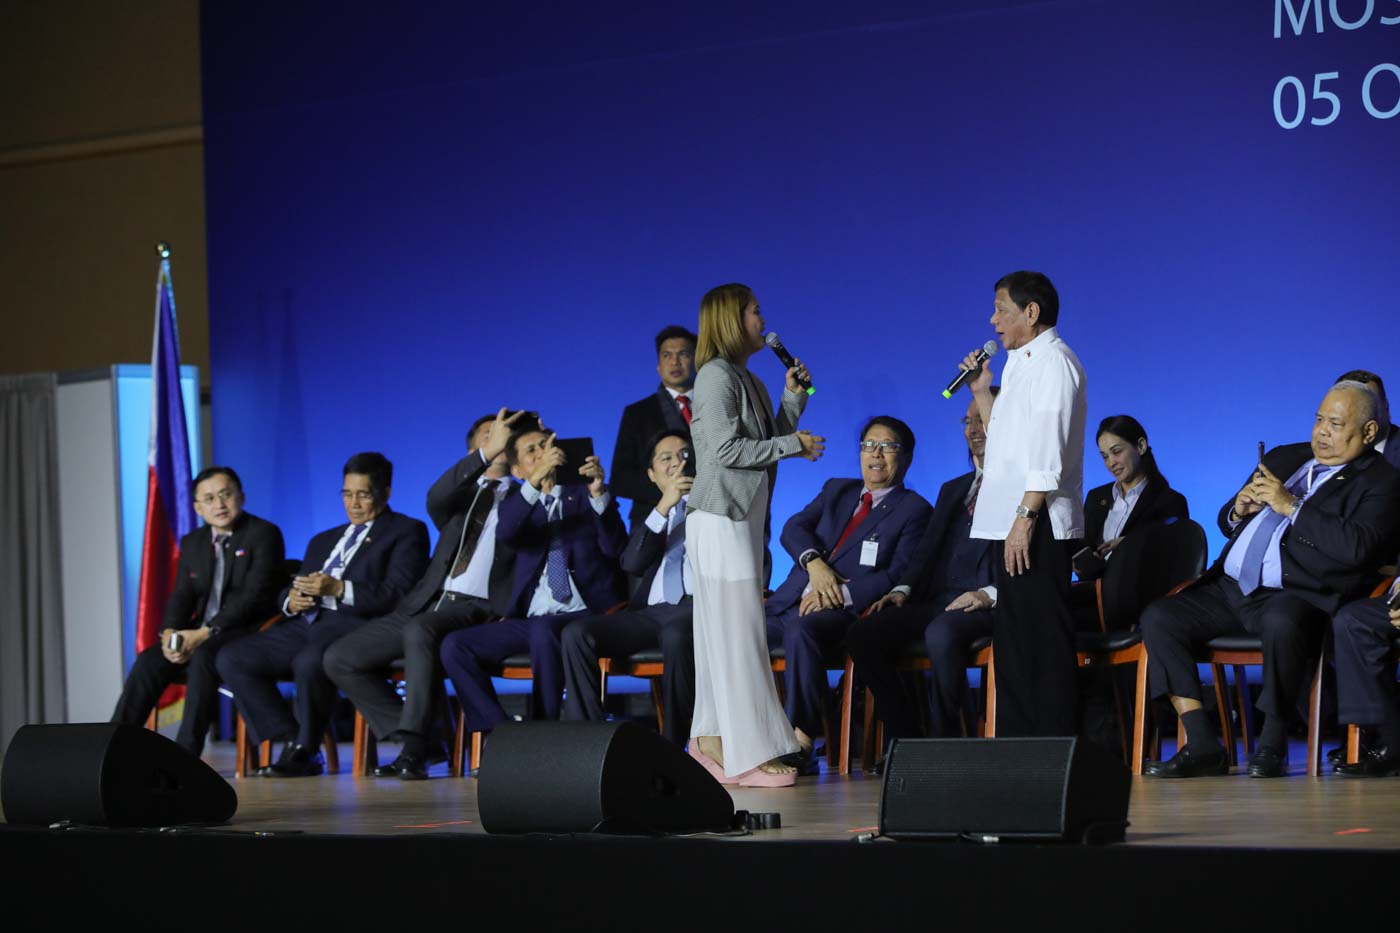 President Rodrigo Roa Duterte sings a duet with one of the performers during his meeting with the Filipino community at the Exhibition of Achievements of National Economy (VDNH) in Moscow on October 5, 2019. ROBINSON NIu00c3u0091AL JR./PRESIDENTIAL PHOTO